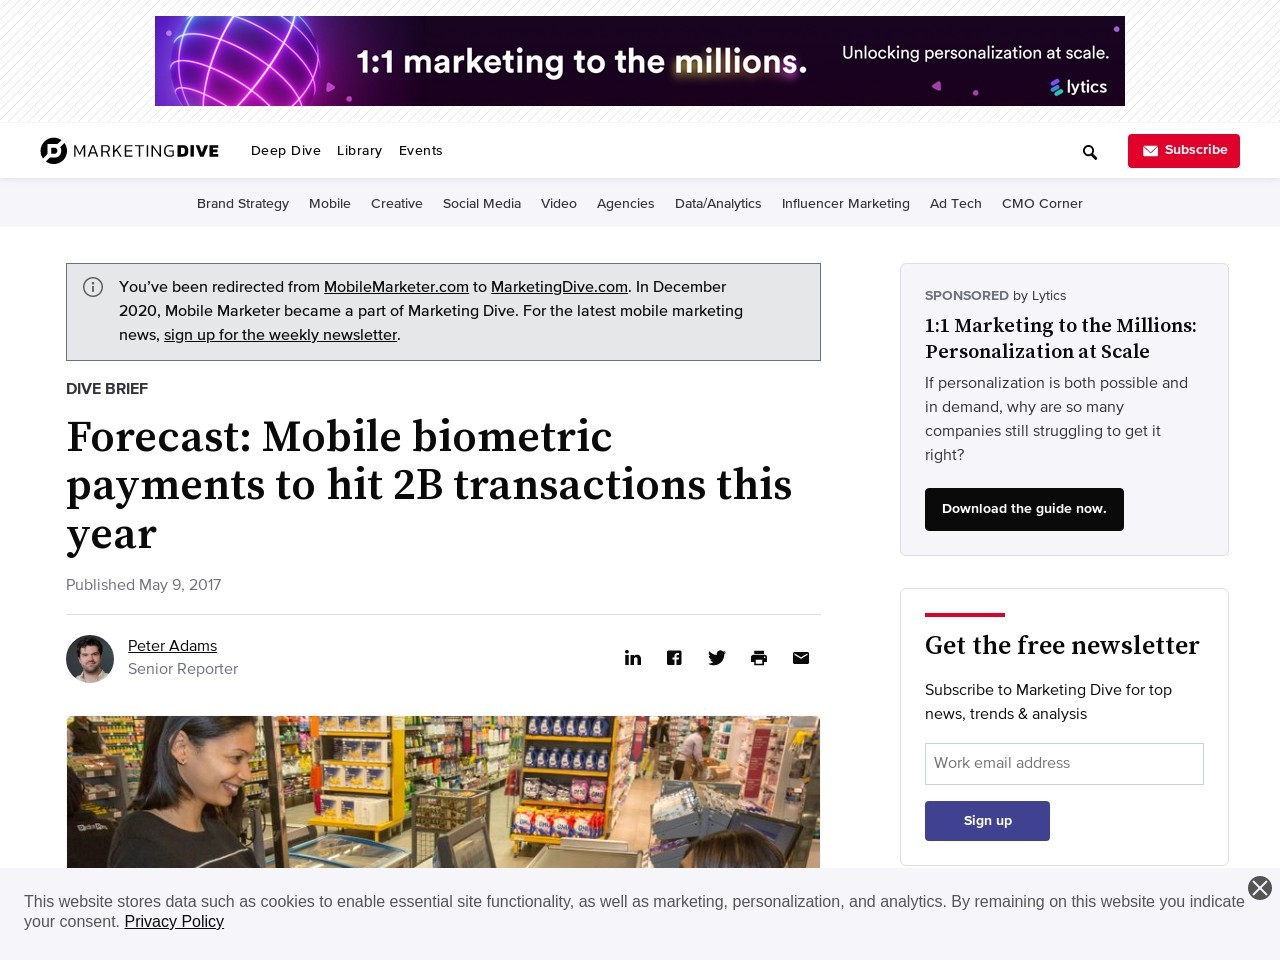 Forecast: Mobile biometric payments to hit 2B this year